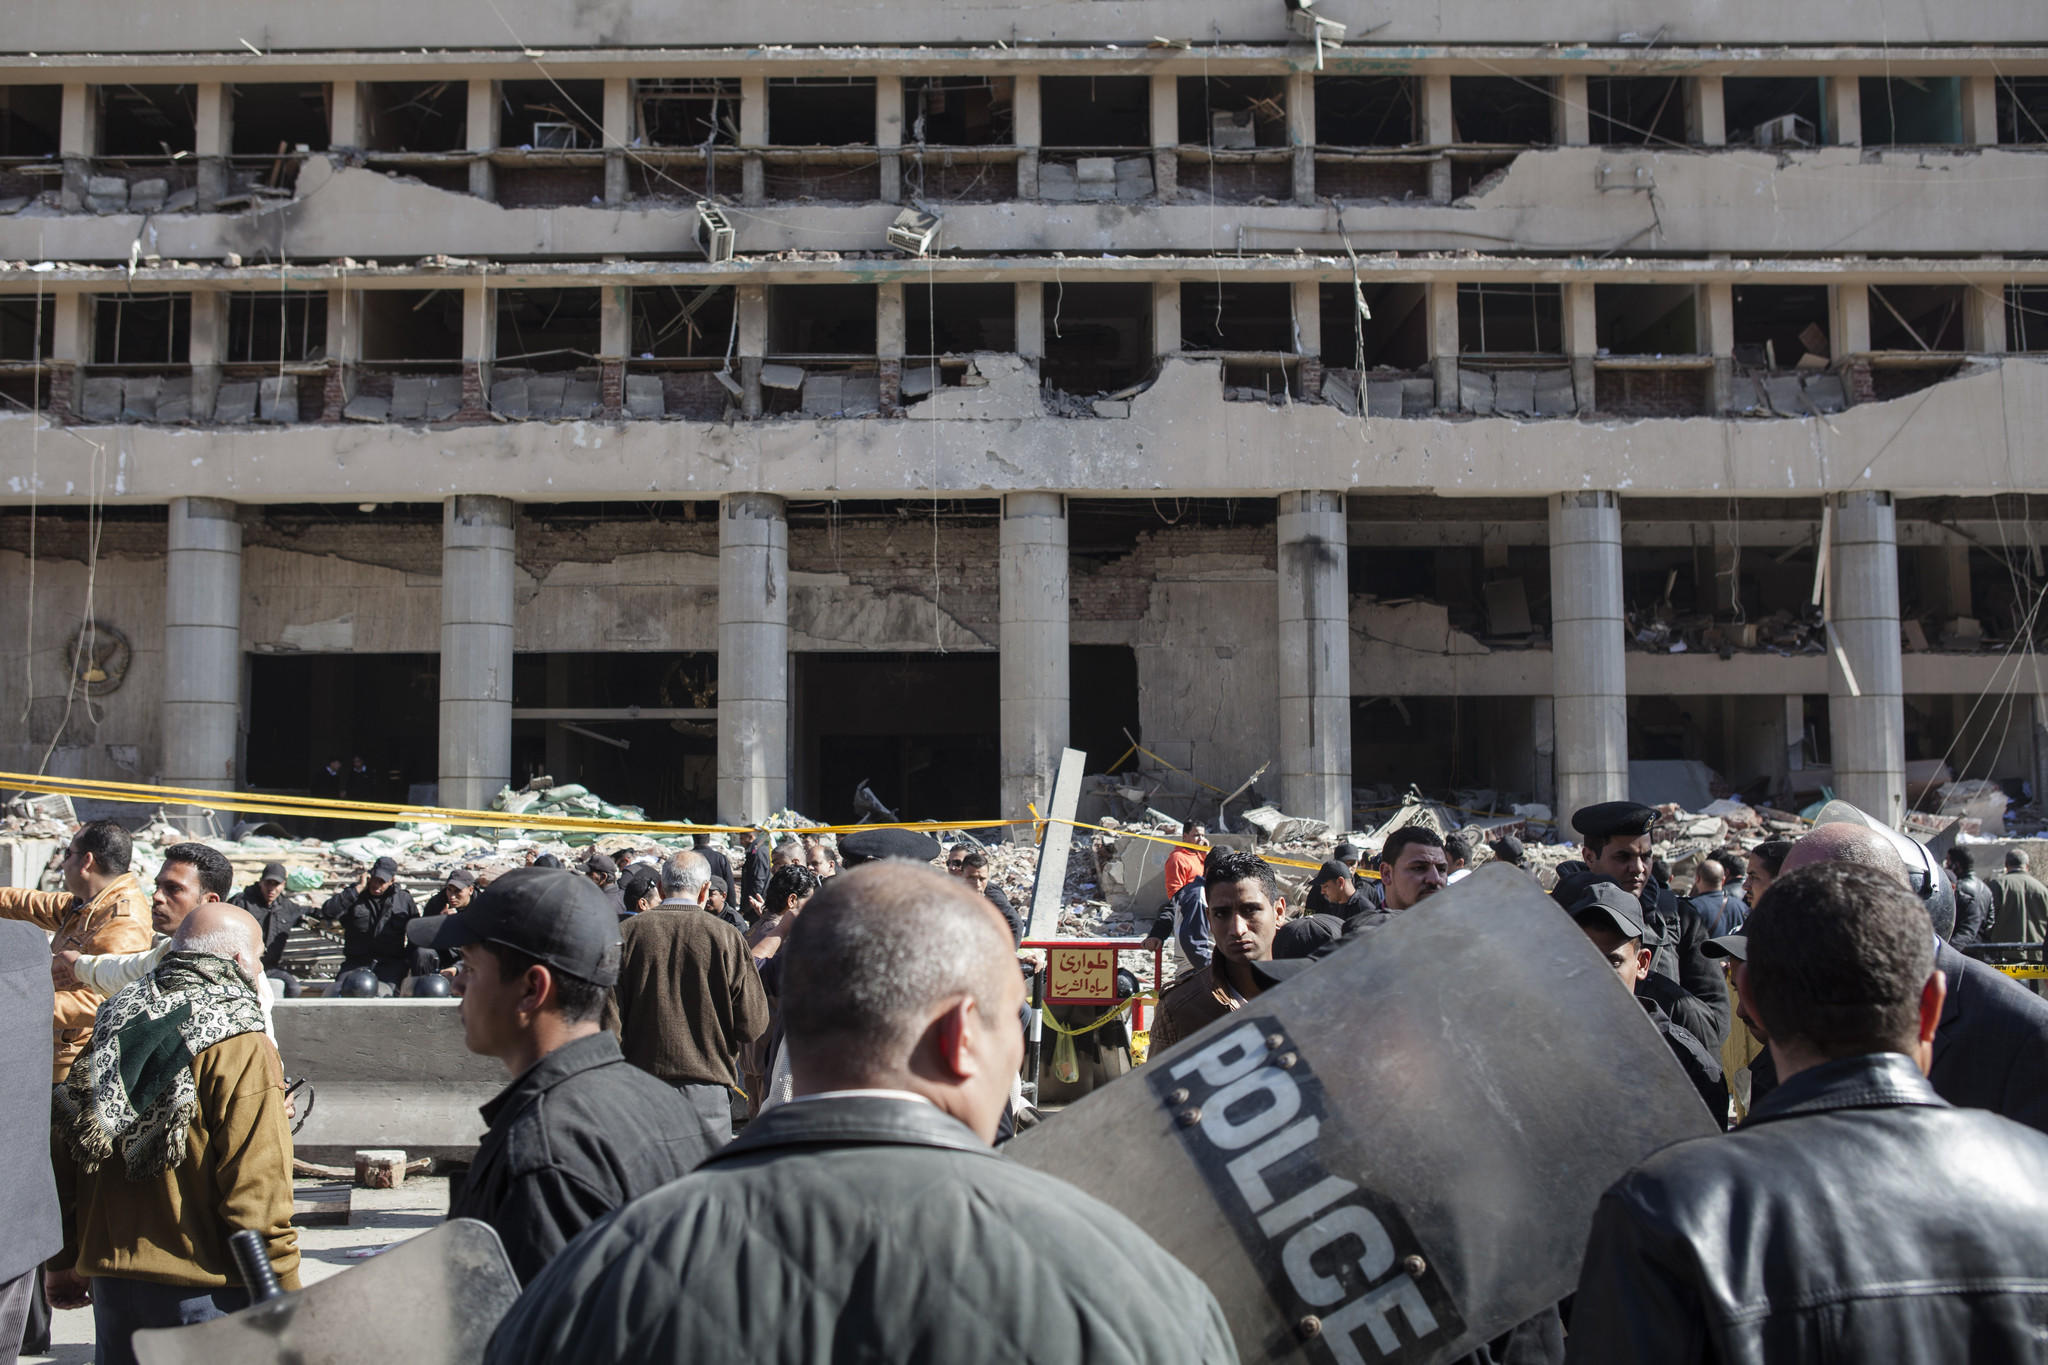 Egyptian security officers stand at the scene of a bomb attack at the Cairo Security Directorate building in the Abdeen district on Jan. 24 in Cairo, Egypt.